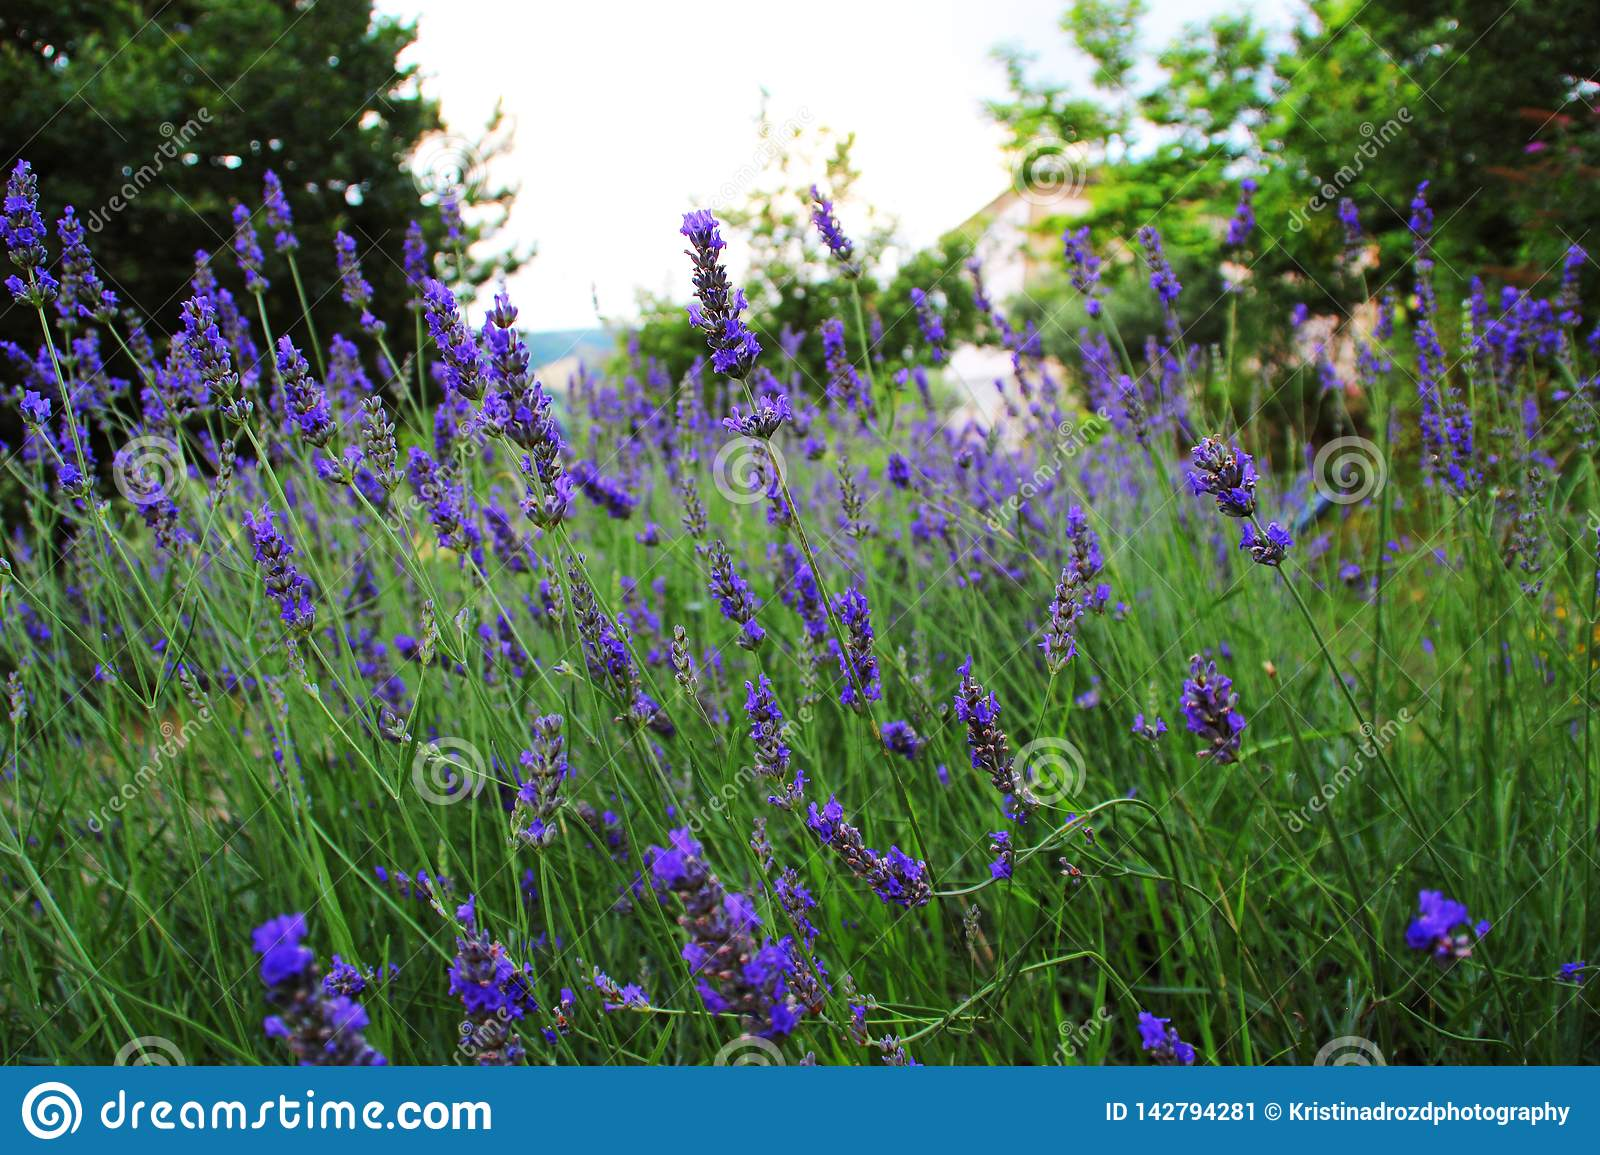 A field of fragrant lavender